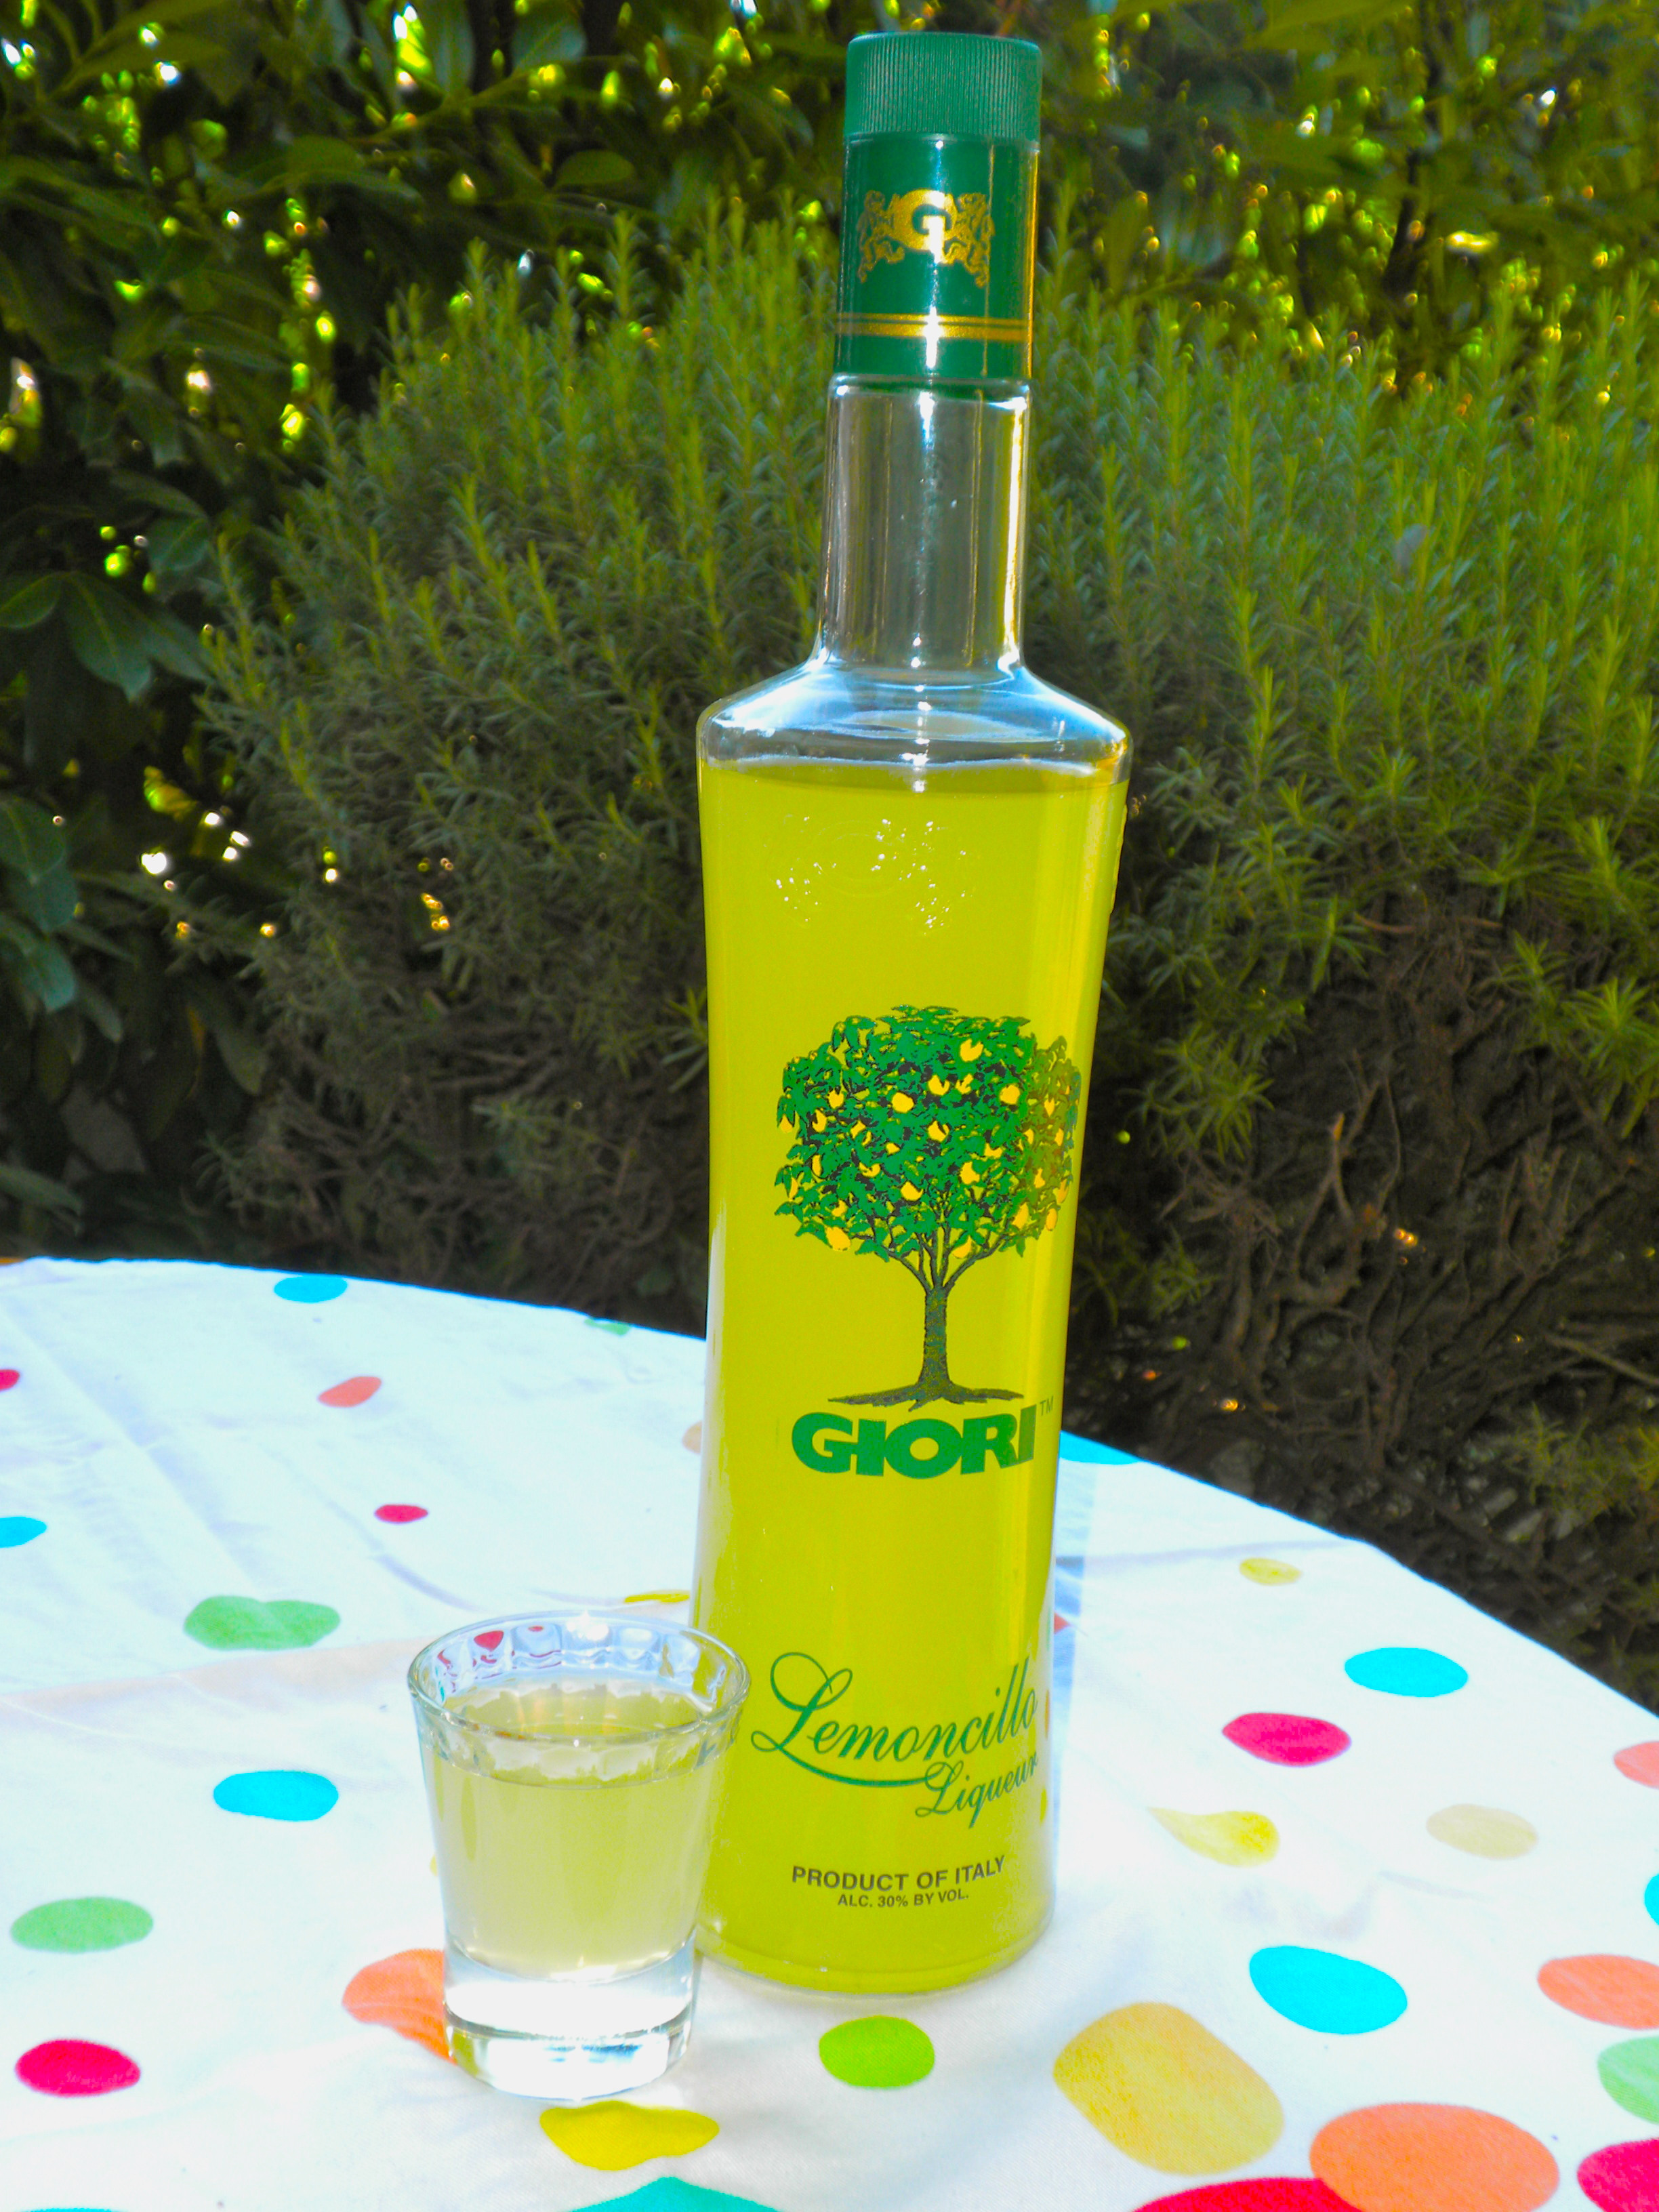 Italian Alcoholic Drinks  What Italians Drink Limoncello or Lemoncillo